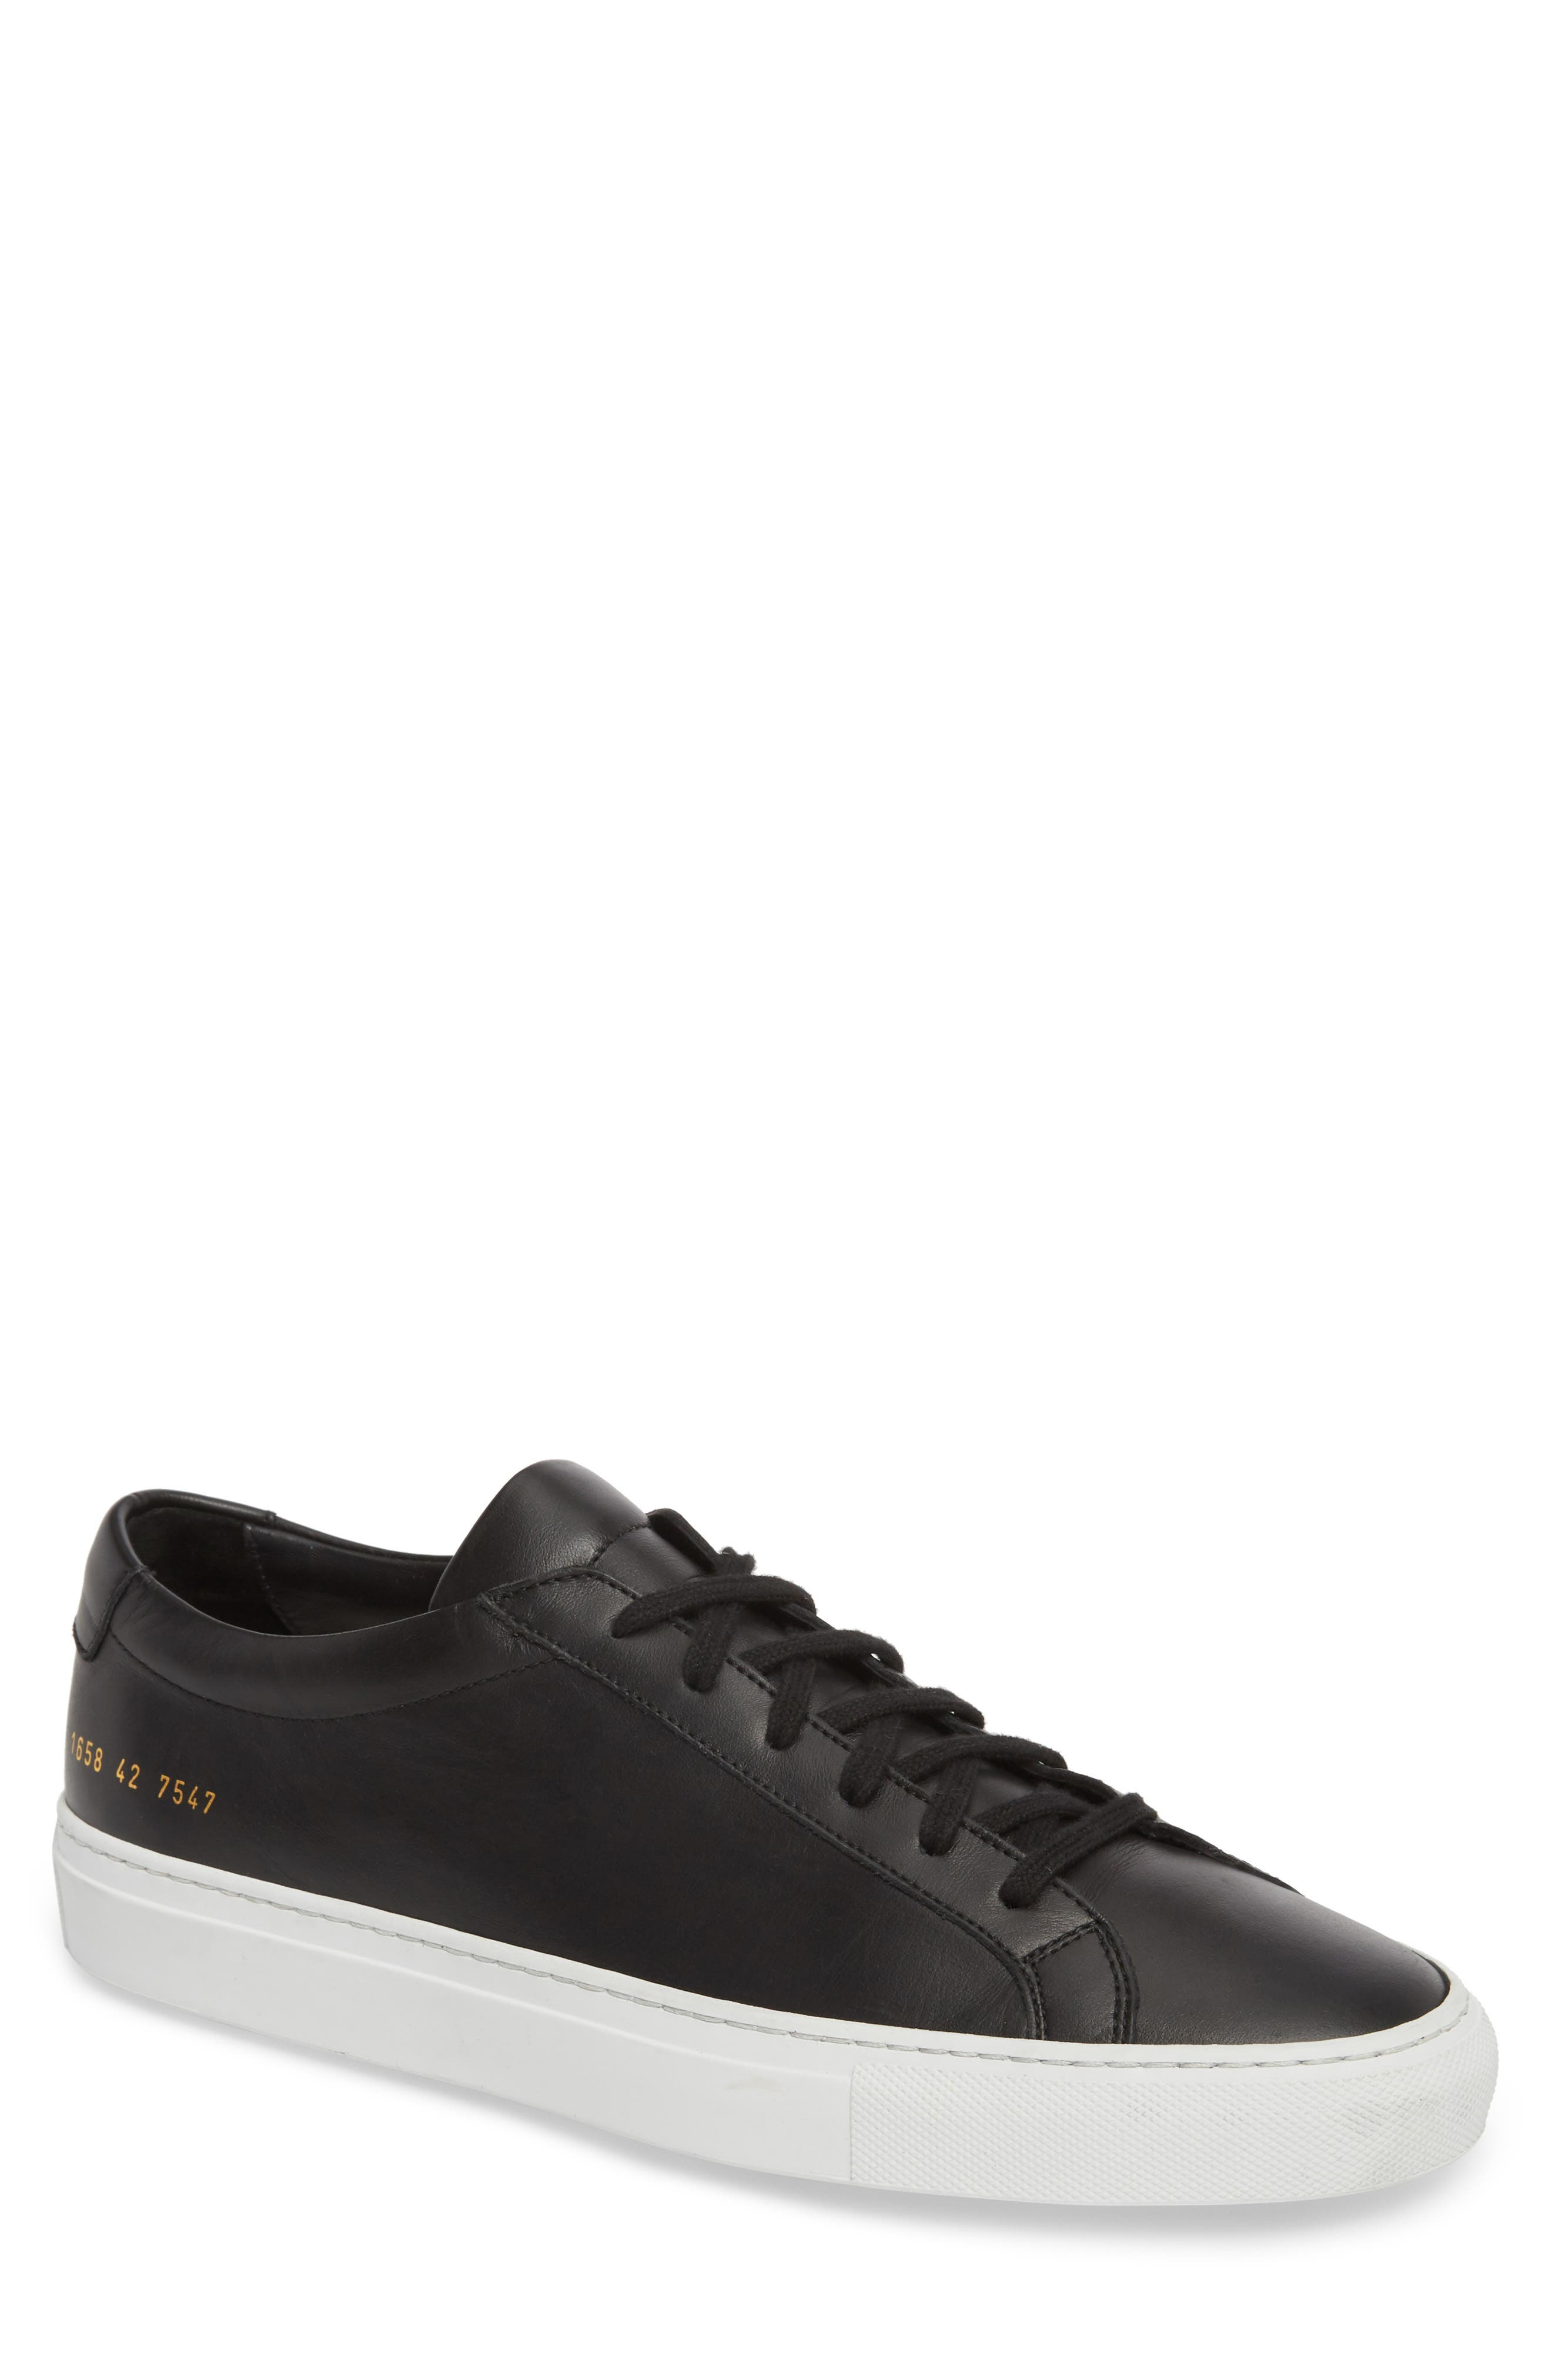 COMMON PROJECTS, Achilles Low Sneaker, Main thumbnail 1, color, BLACK LEATHER